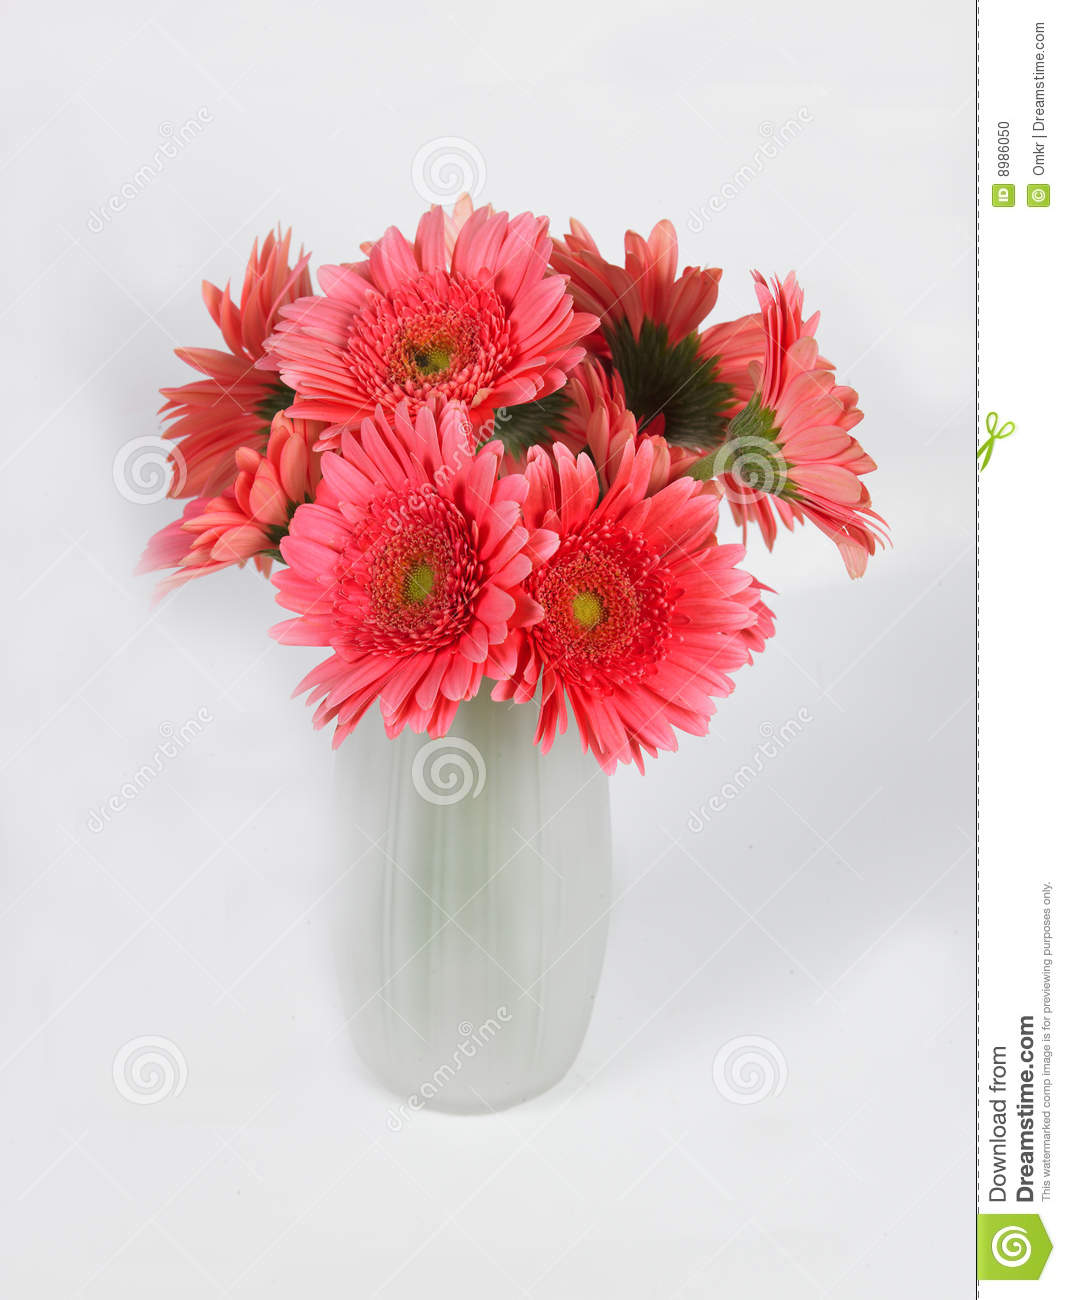 Flower Vase With Pink Daisy Flowers Stock Photo Image Of Origin